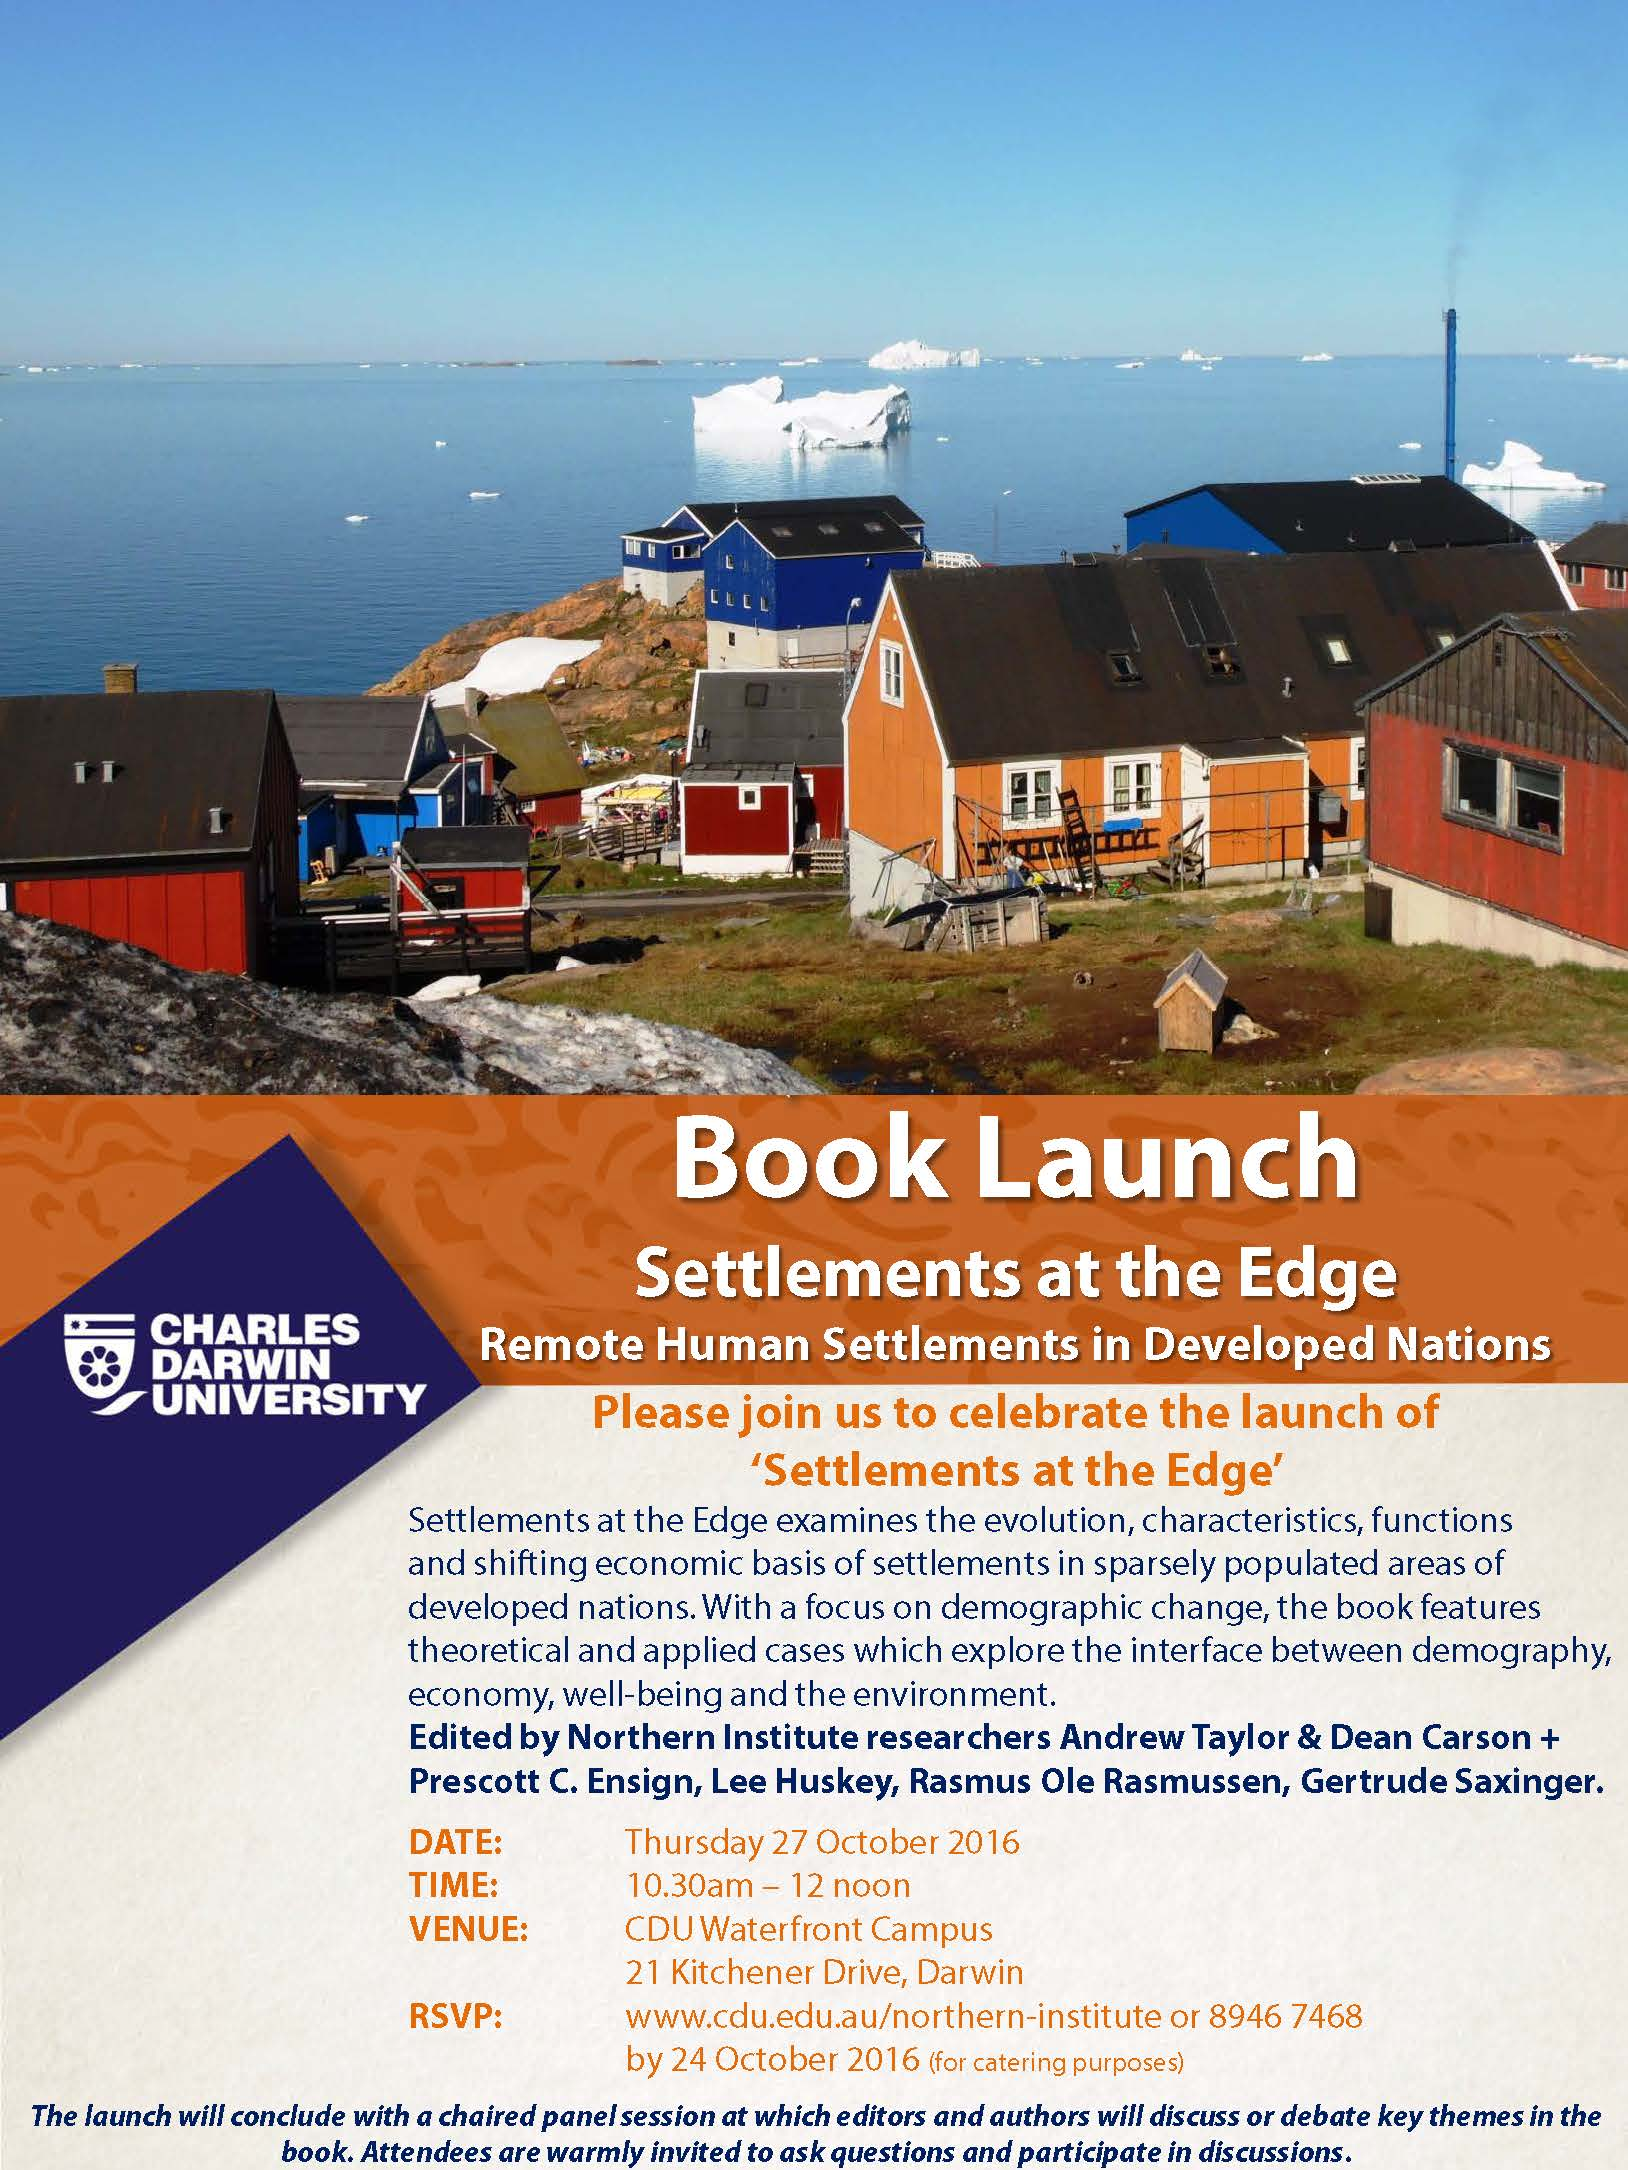 Settlements at the Edge, 27 October